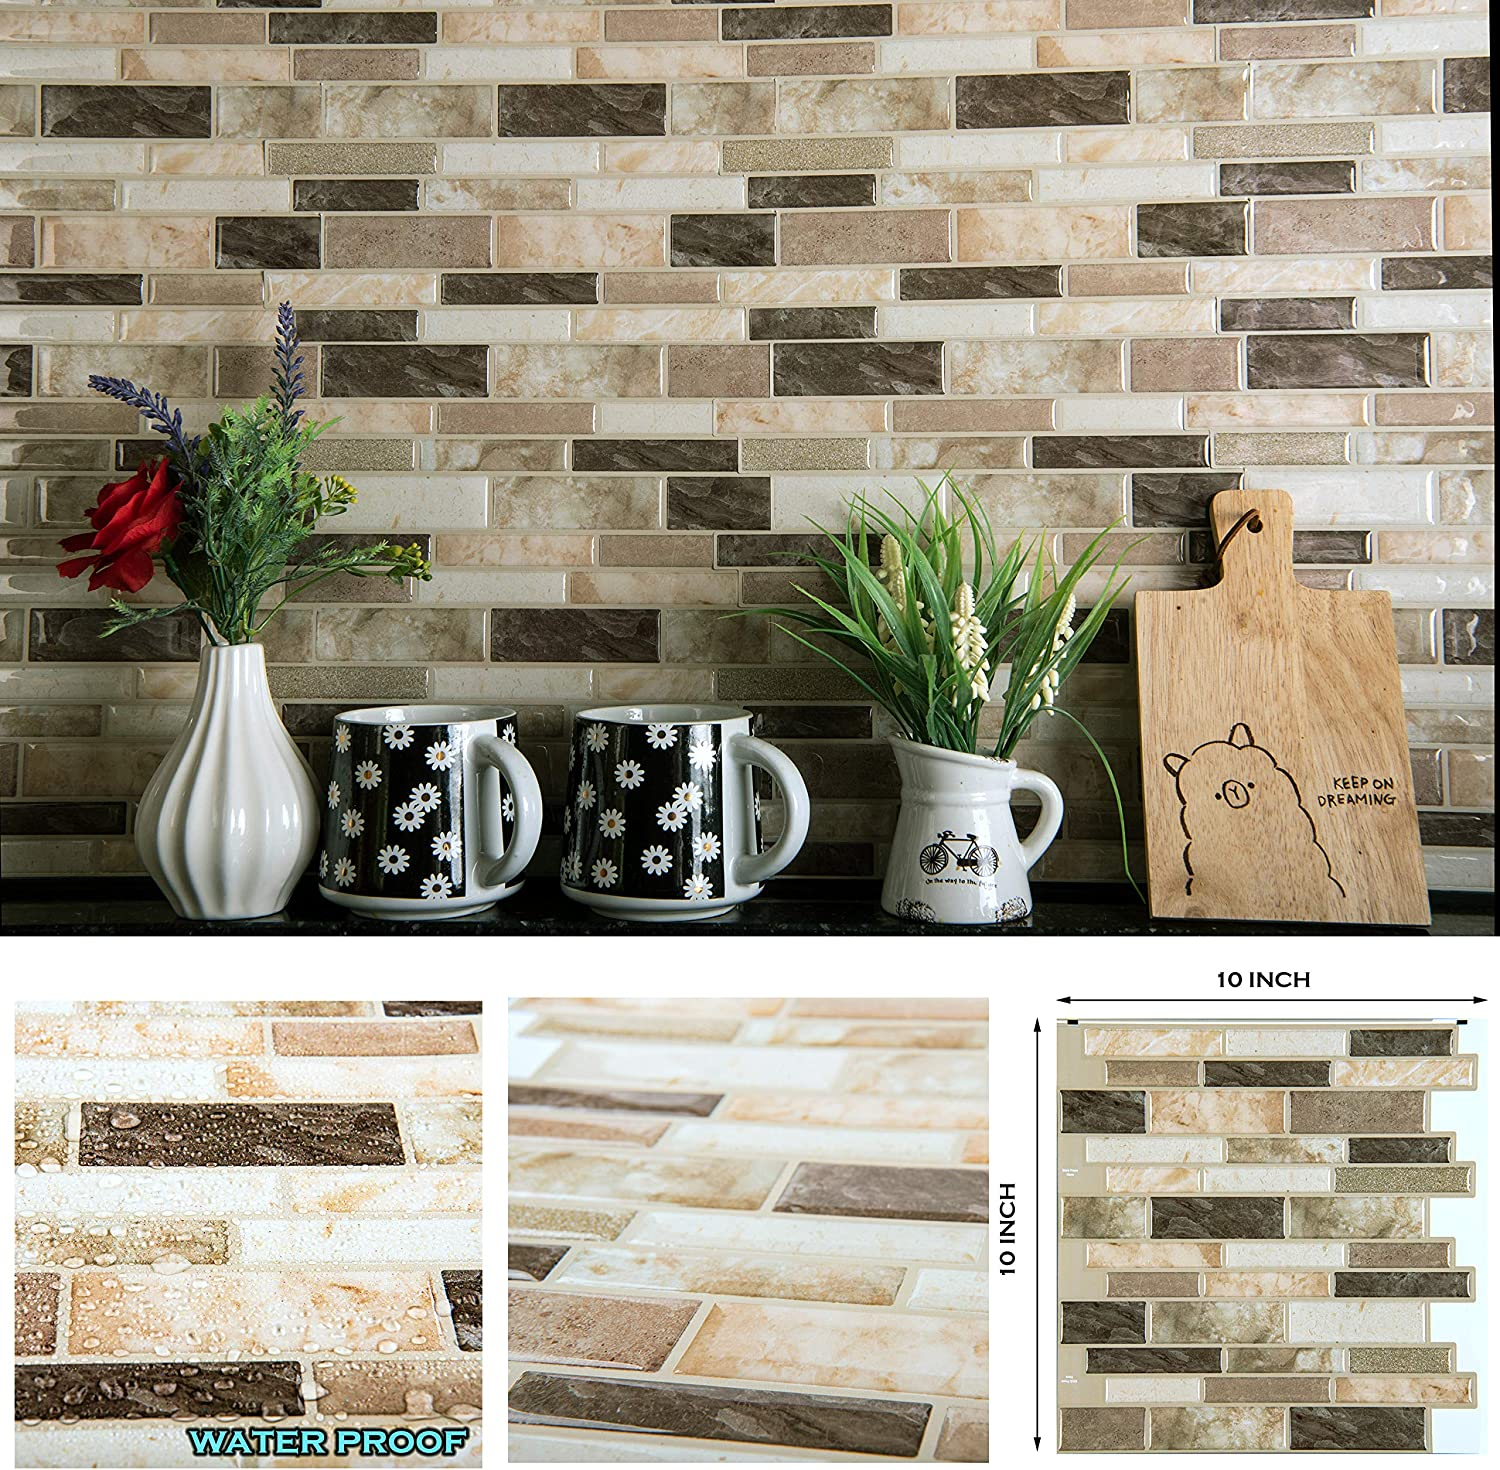 - Amazon.com: STIQUICK TILES Peel And Stick Backsplash - For Kitchen